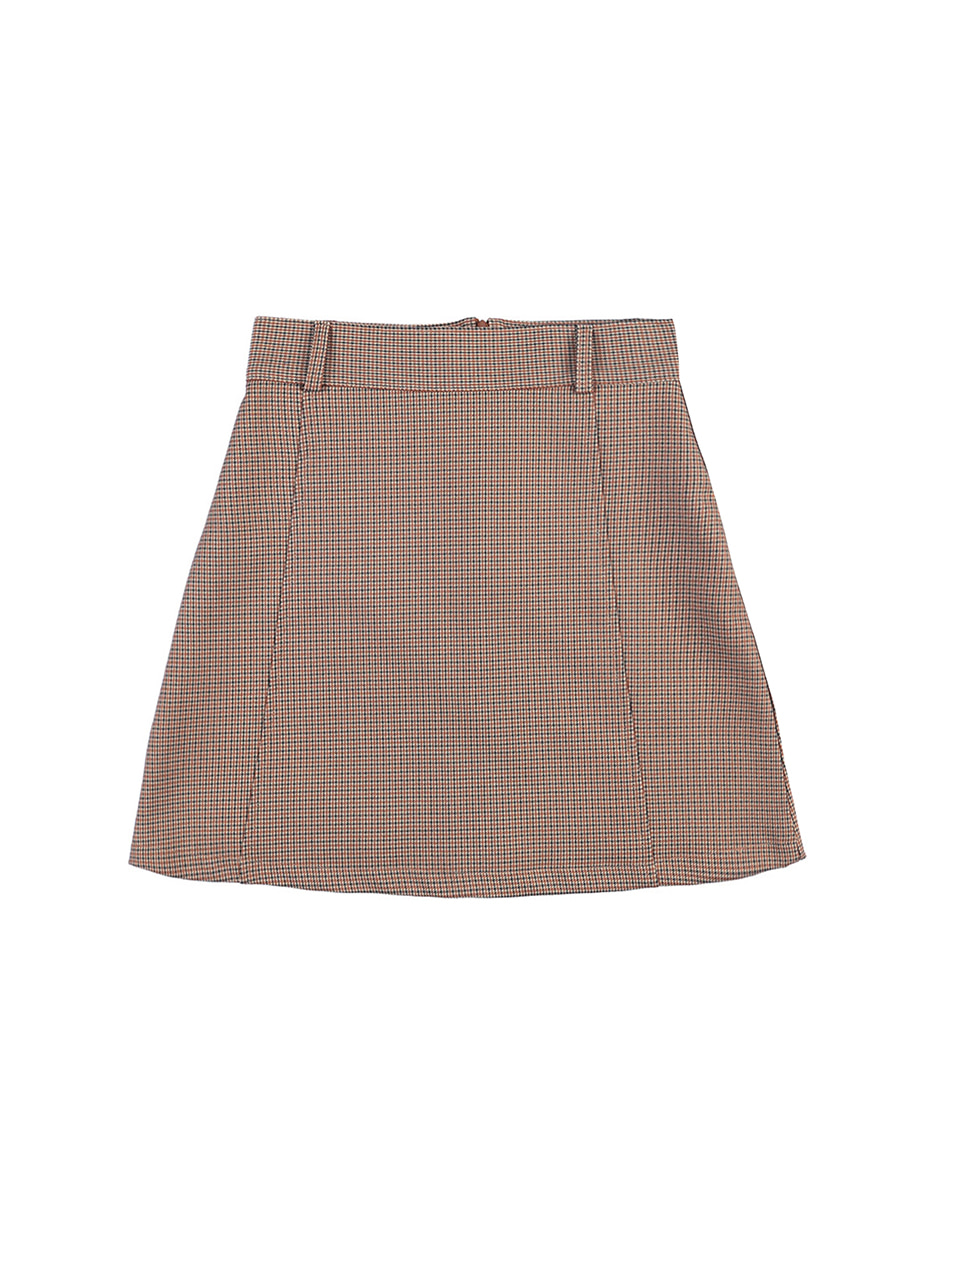 mgmg houndtooth check skirt_brown